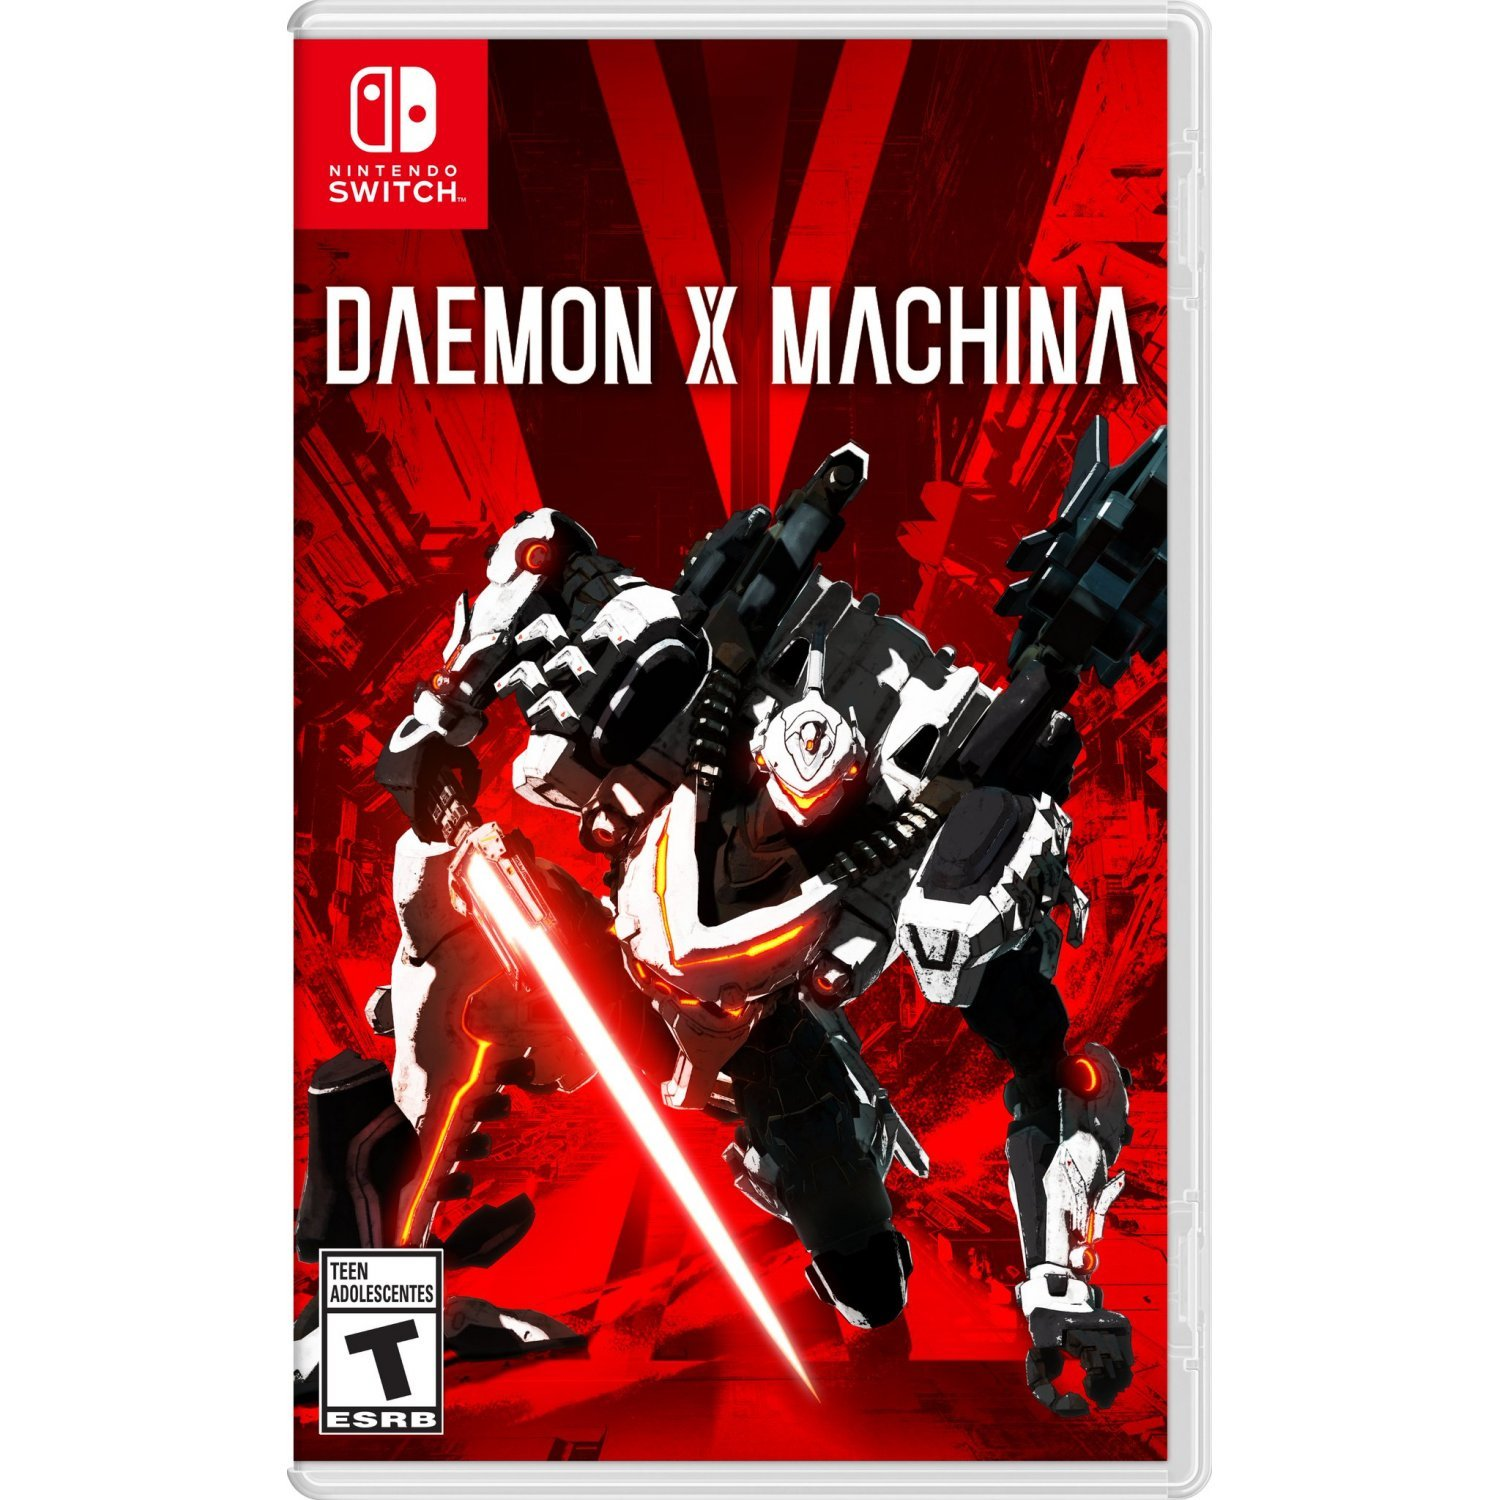 daemon-x-machina-565139.14.jpg